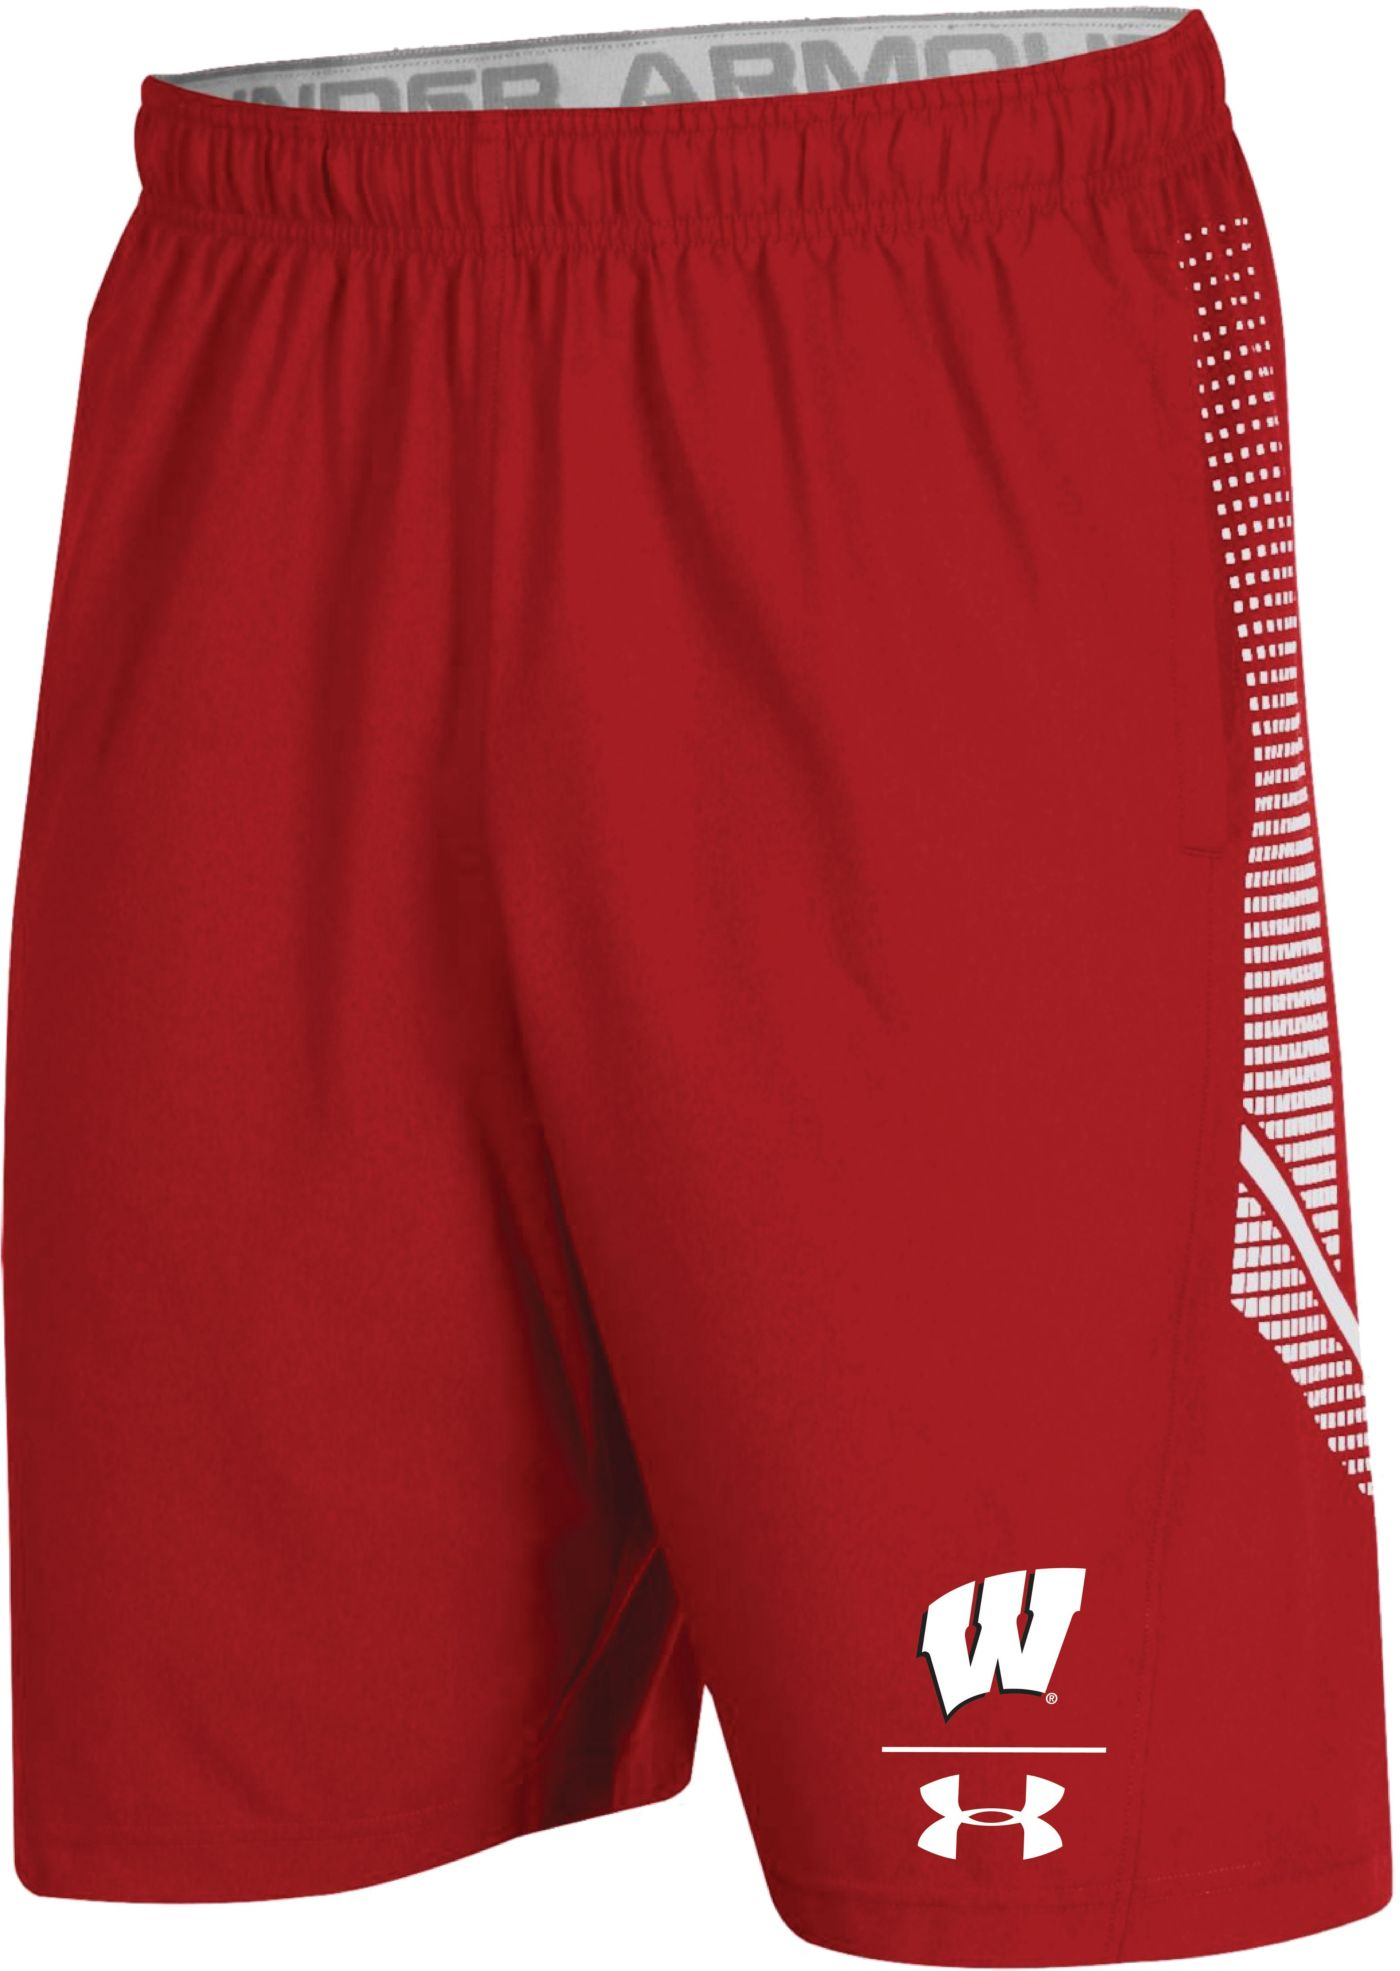 Under Armour Men's Wisconsin Badgers Red Sideline Pinnacle Shorts